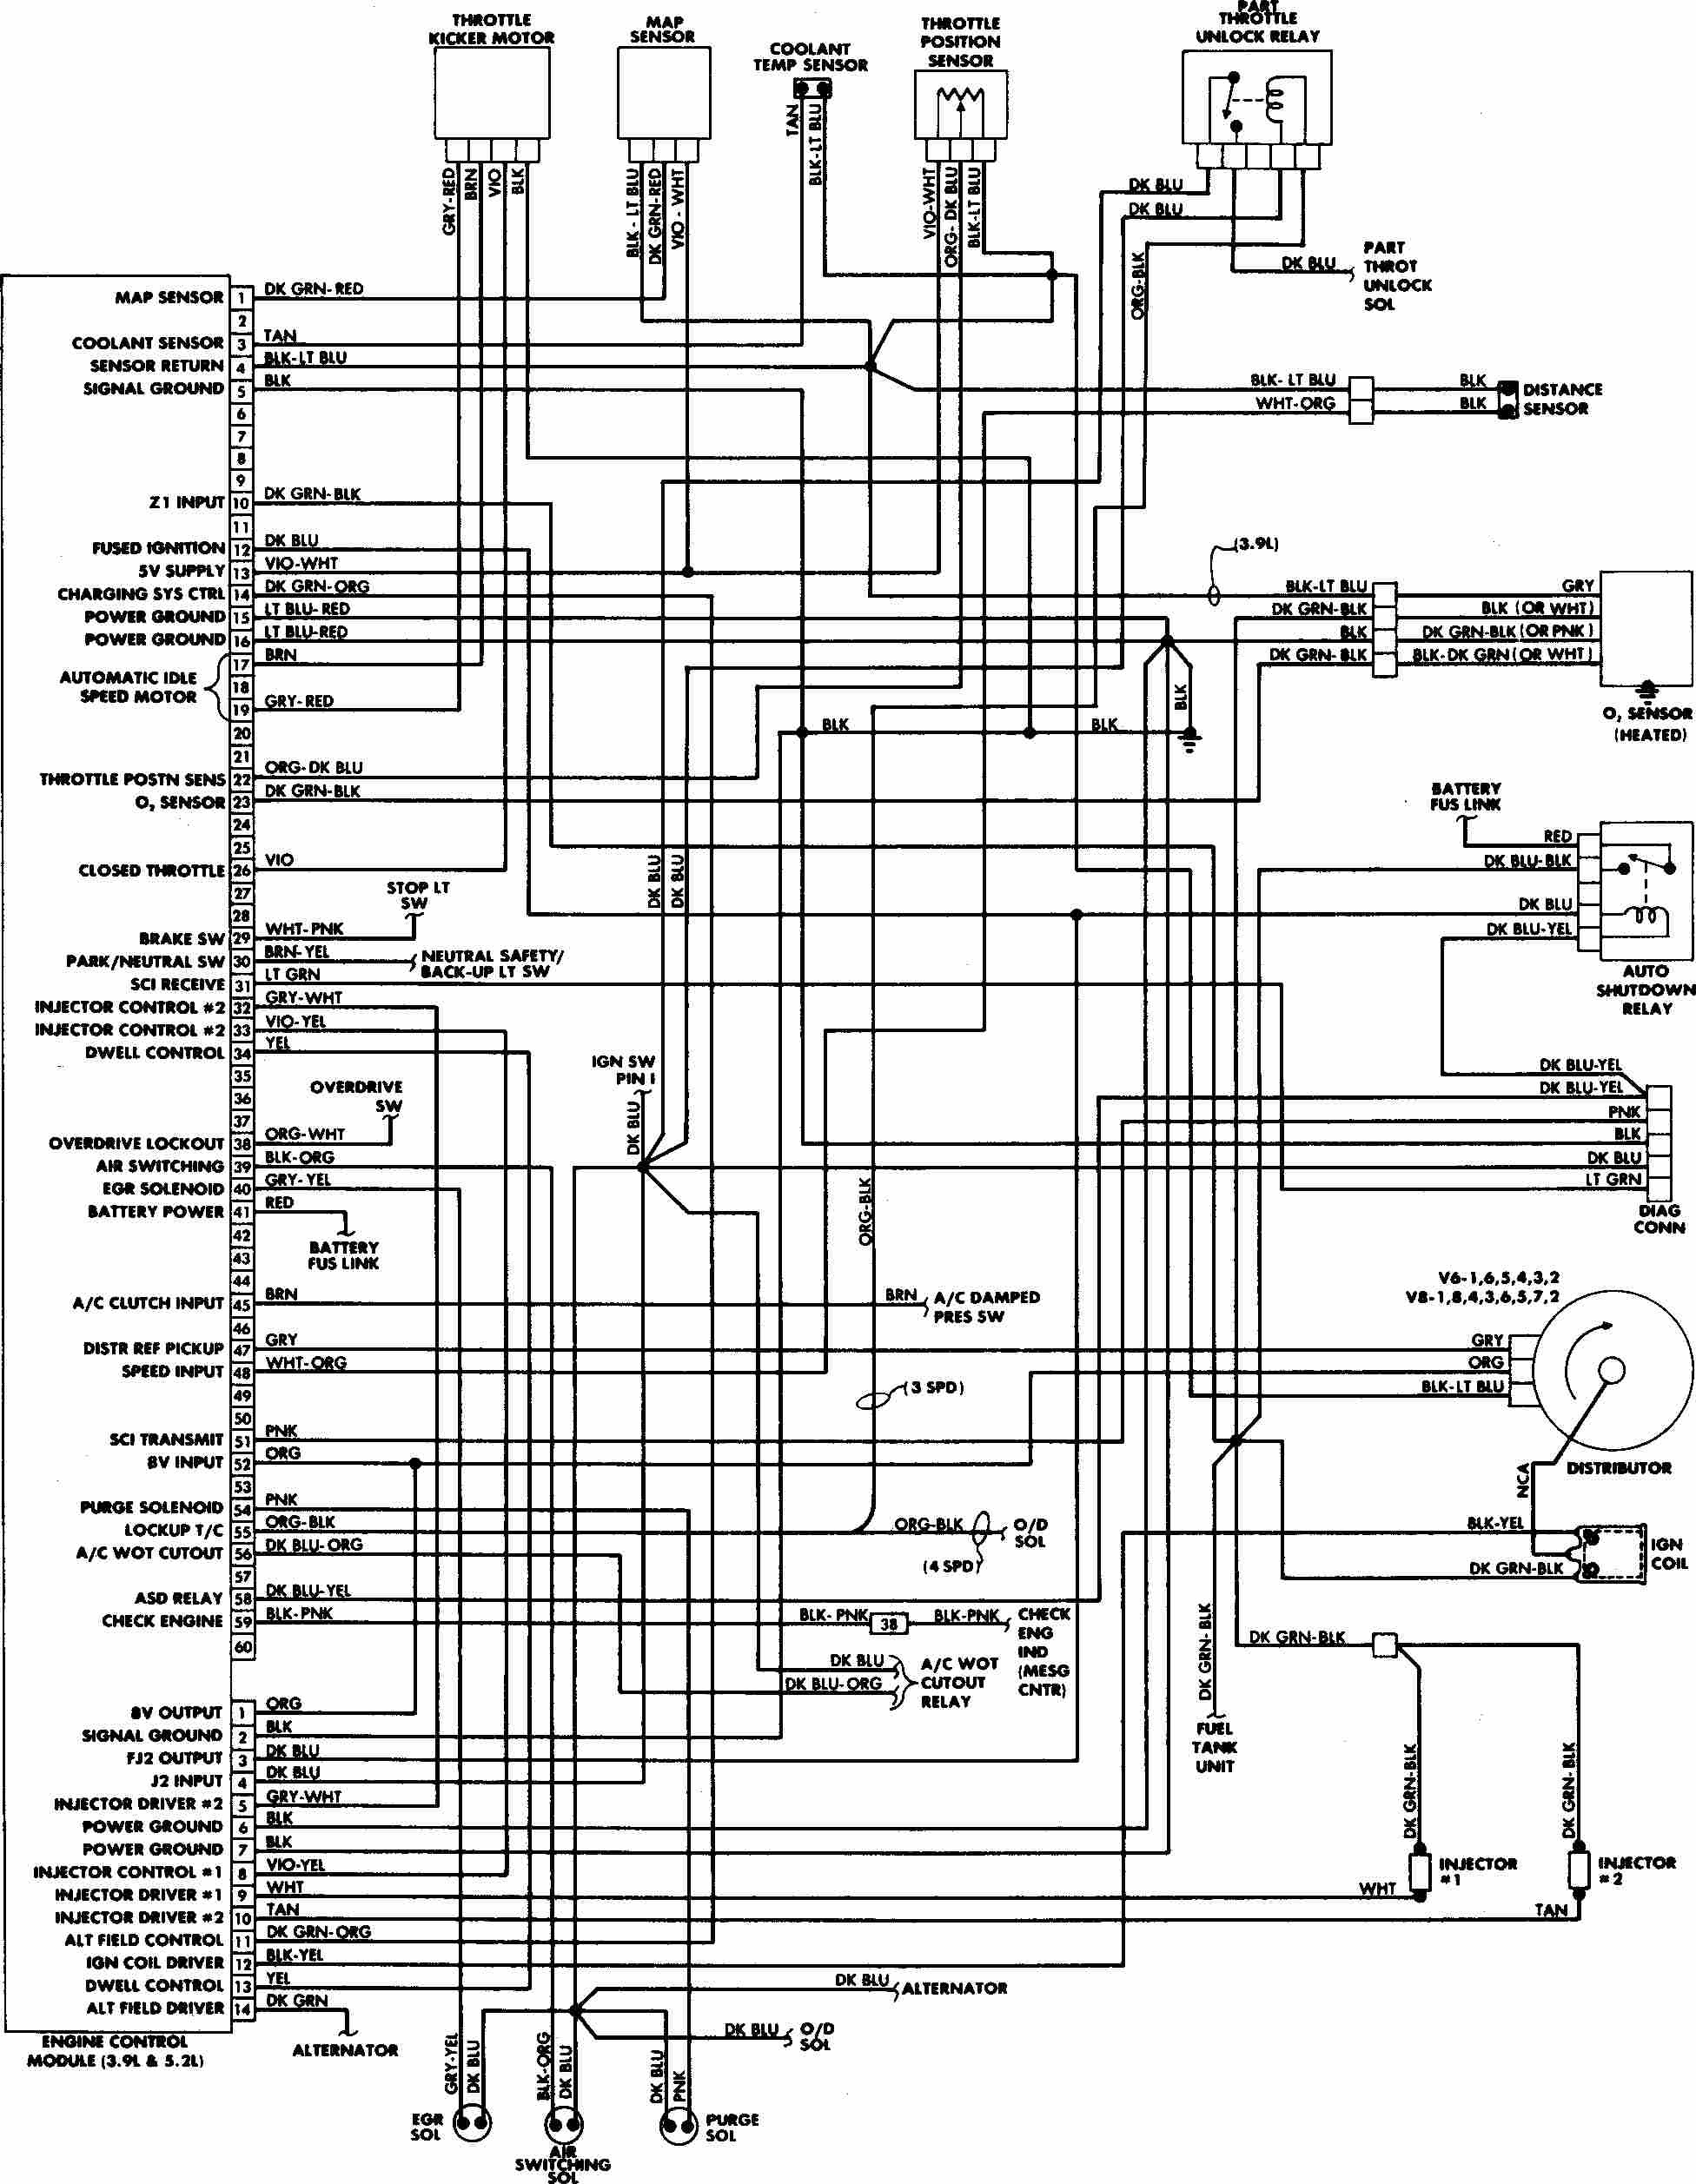 05 Dodge Caravan Wiring Diagram